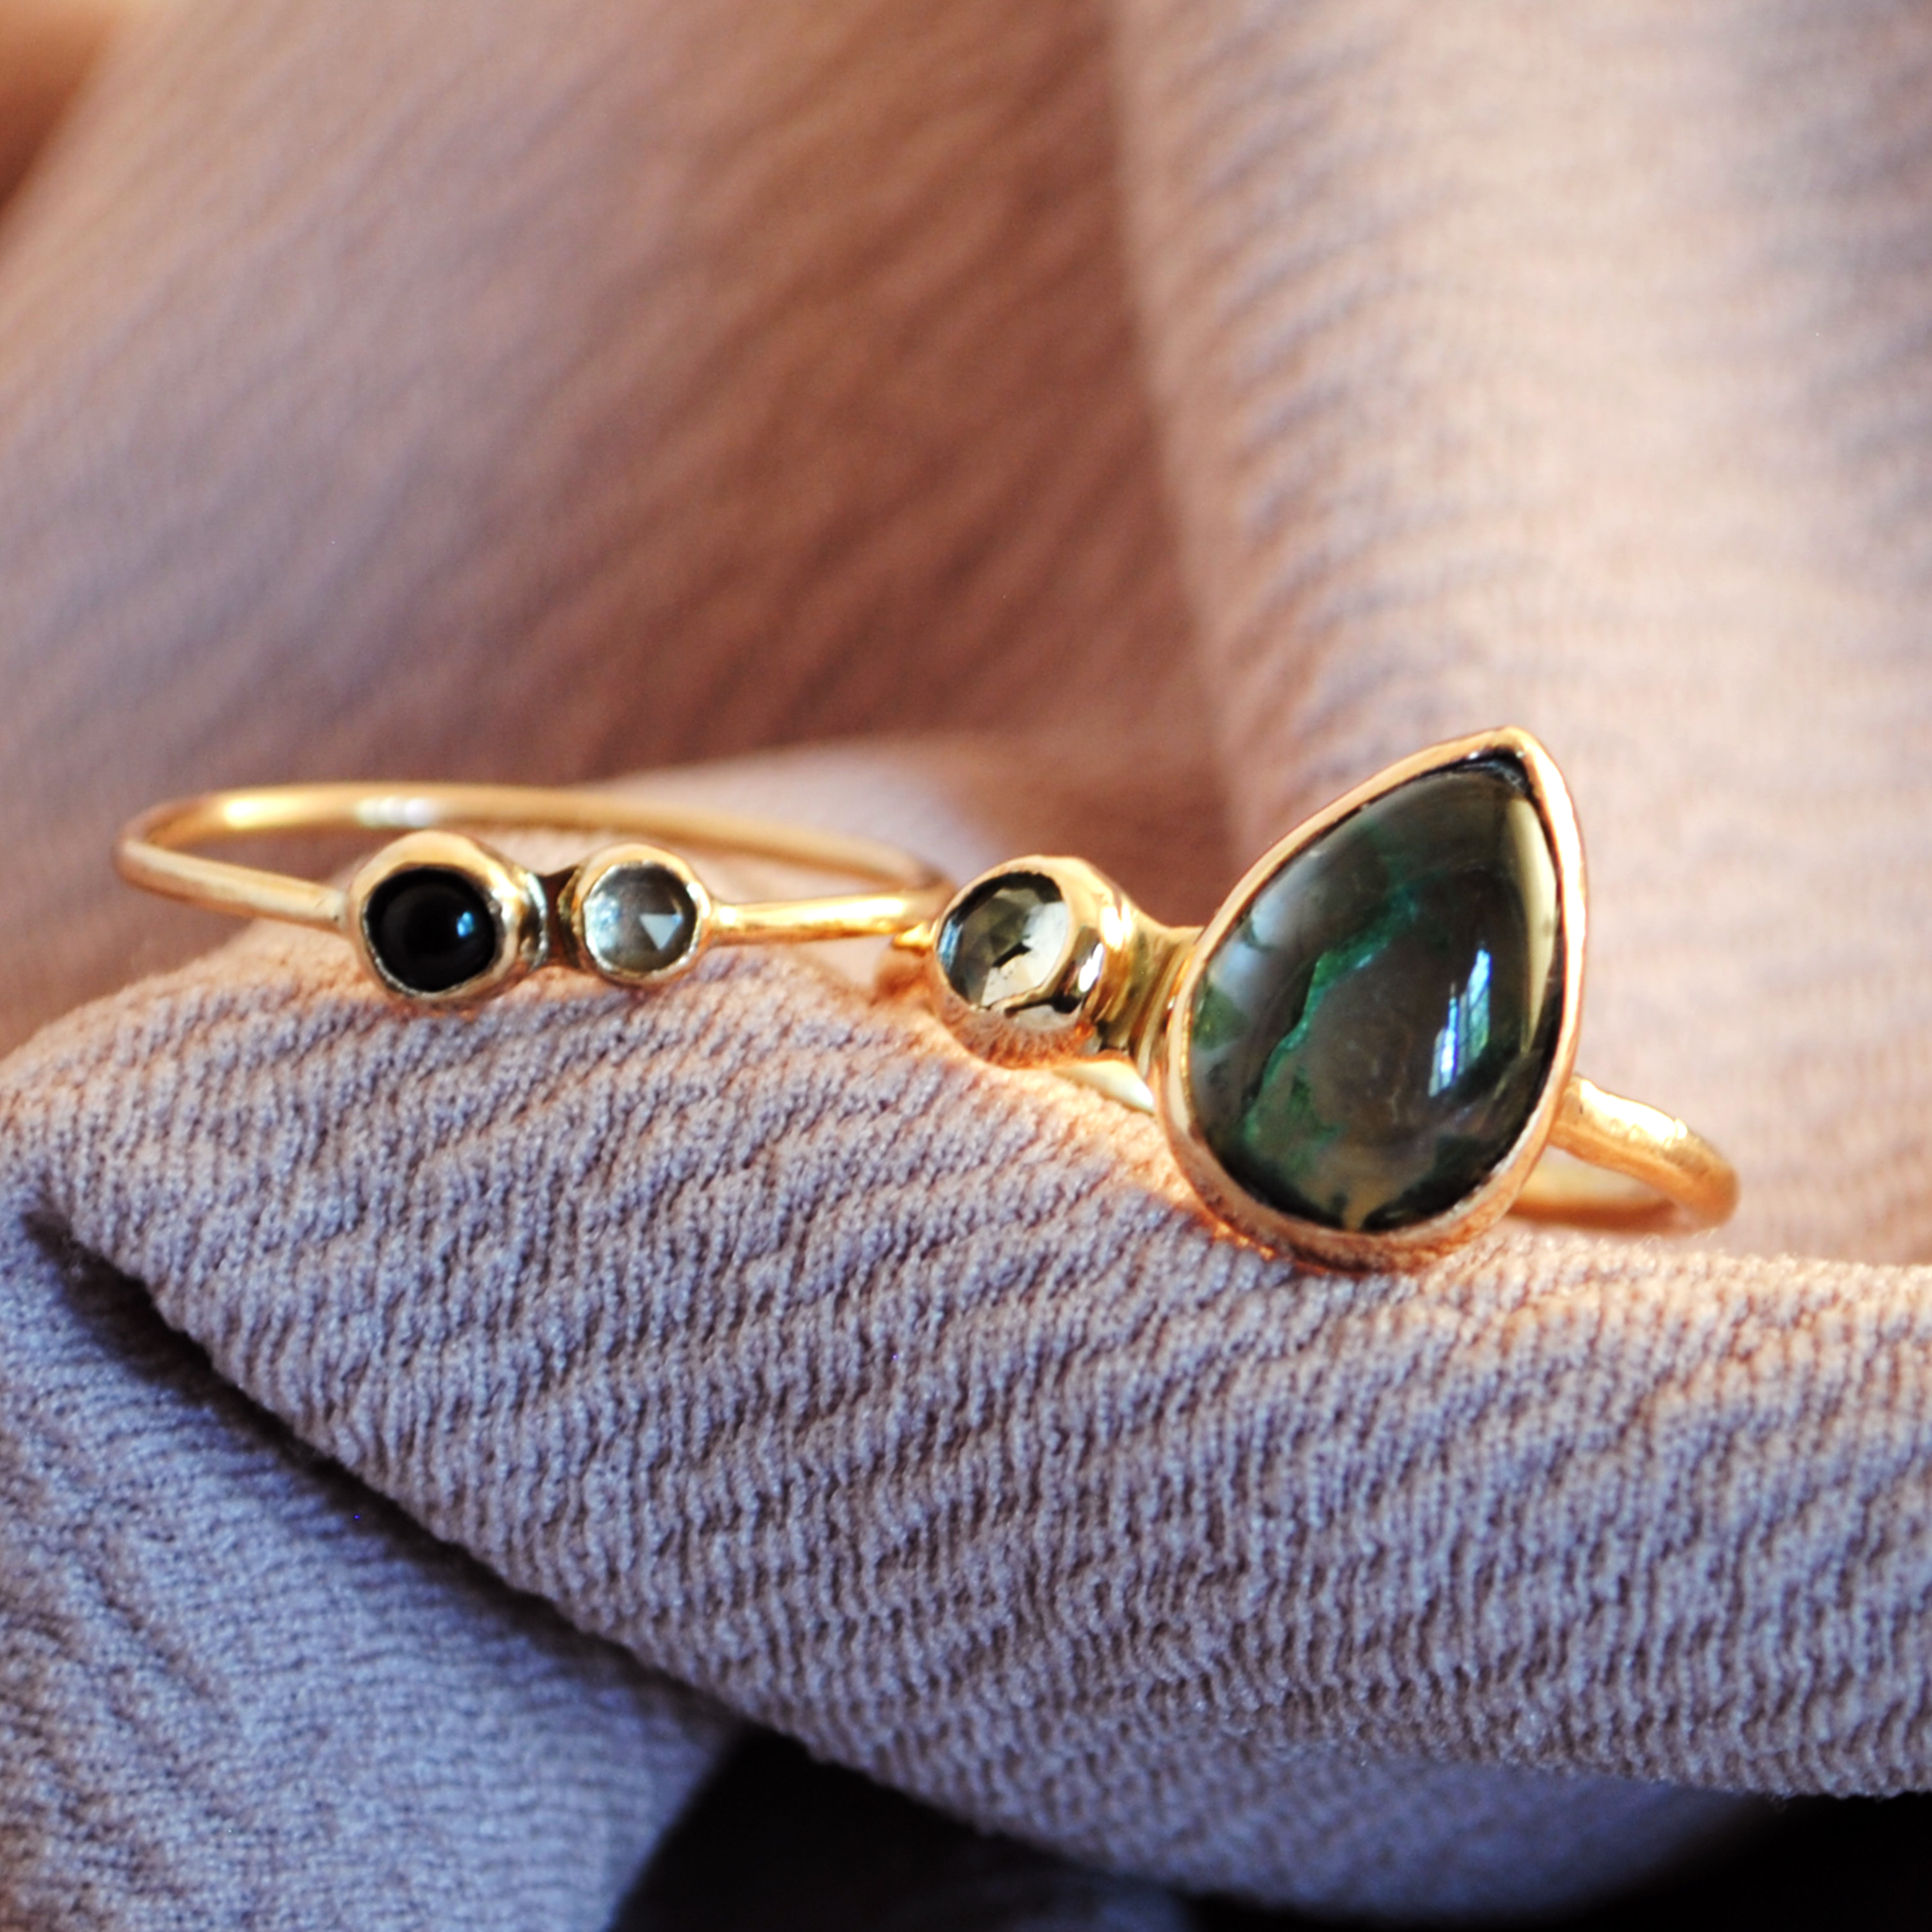 Moss Agate Stacking Rings with Black Onyx and White Topaz   Custom Design